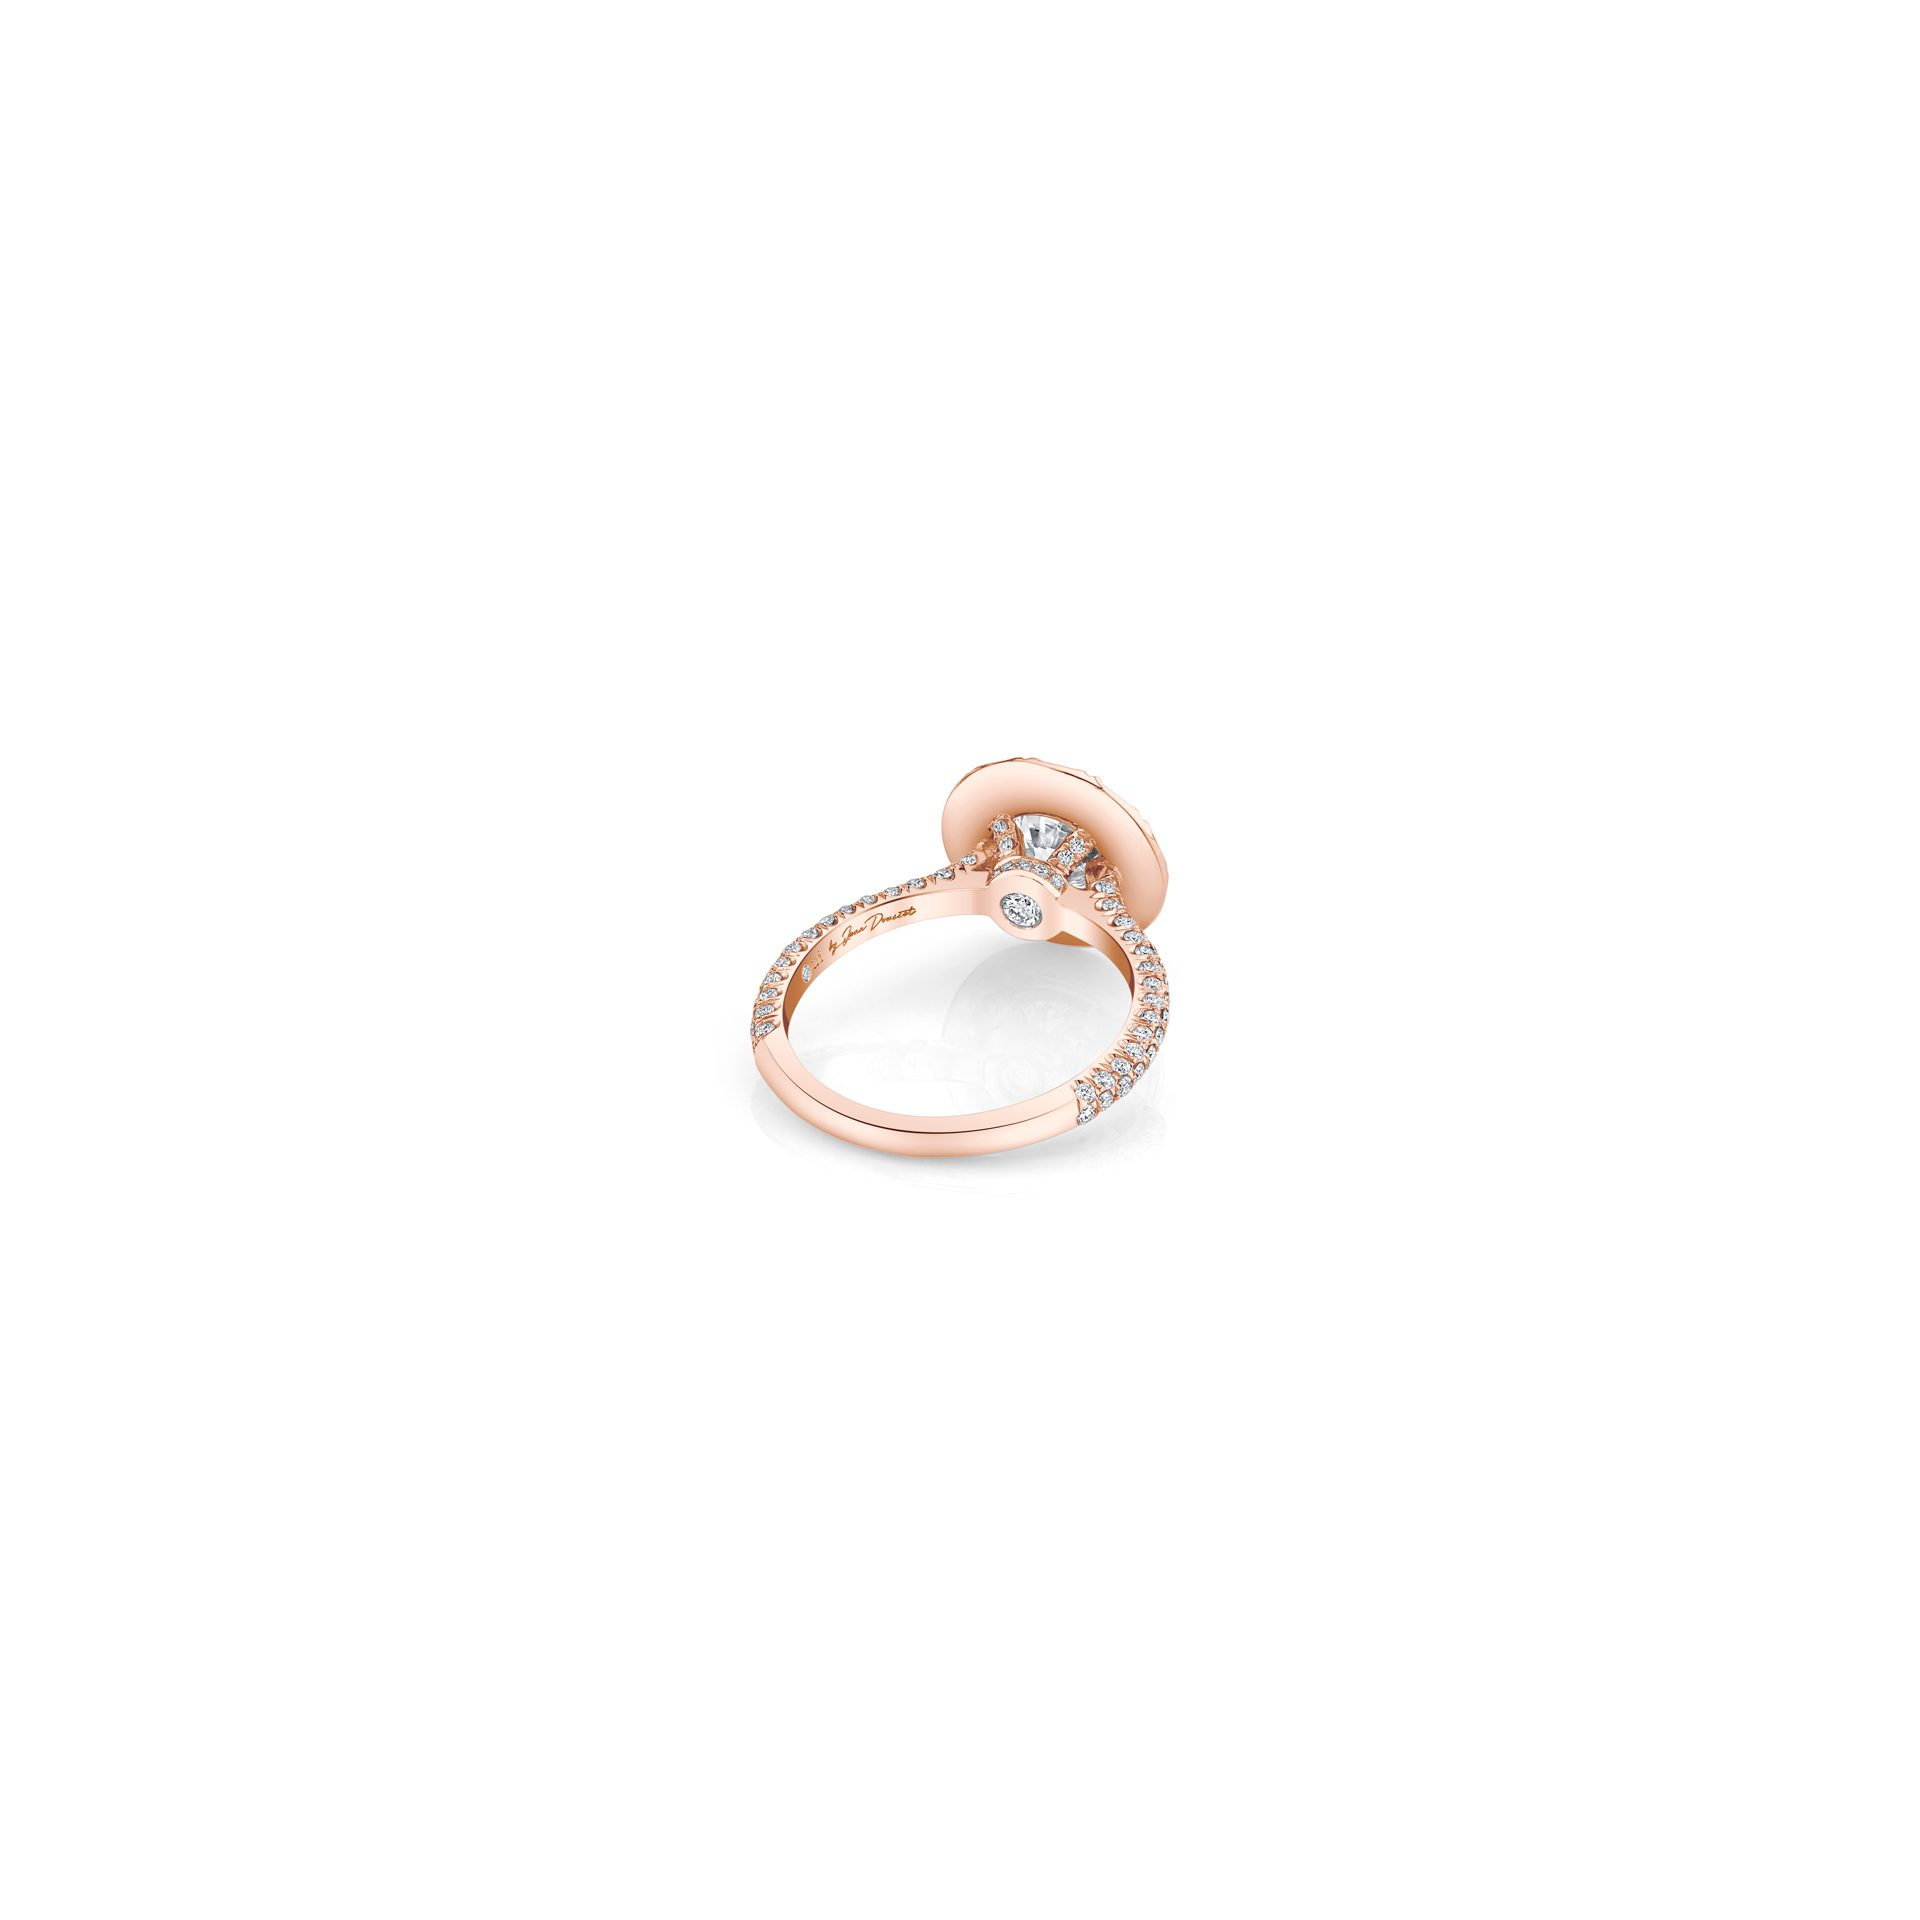 Jacqueline Round Brilliant Seamless Solitaire™ Engagement Ring with diamond pavé in 18k Rose Gold Back View by Oui by Jean Dousset